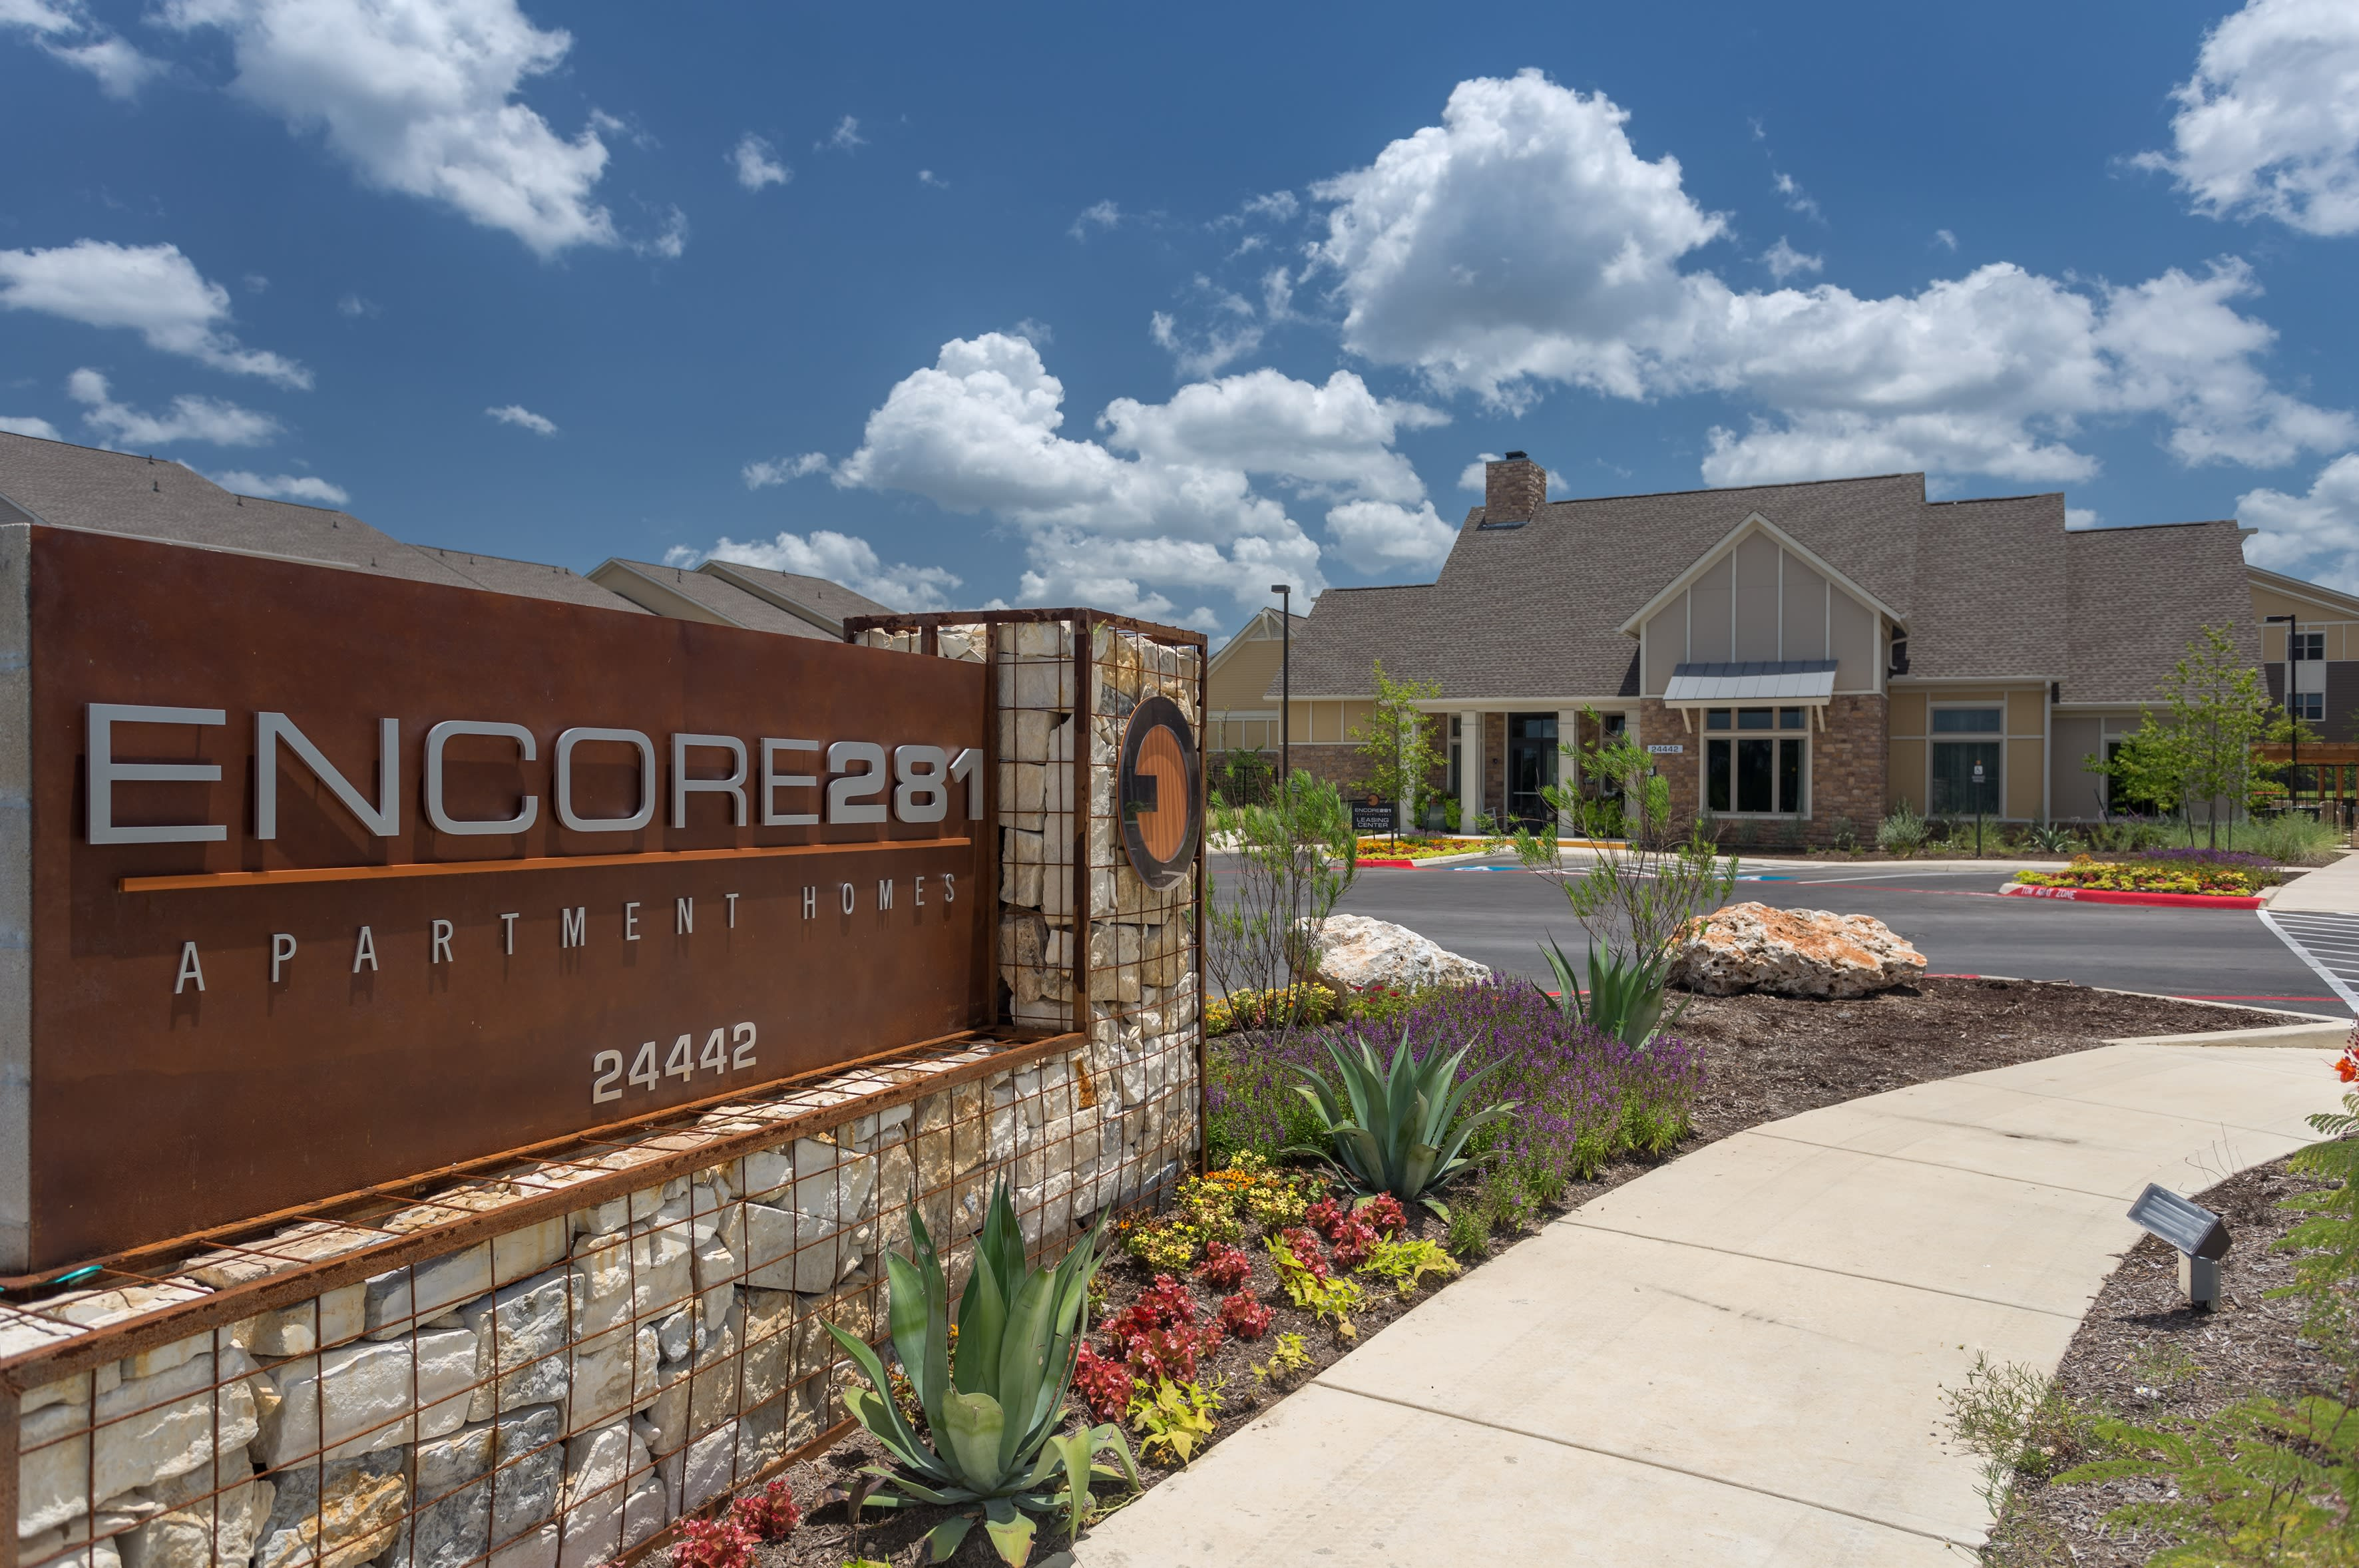 Exterior view with monument sign at Encore 281 in San Antonio, Texas